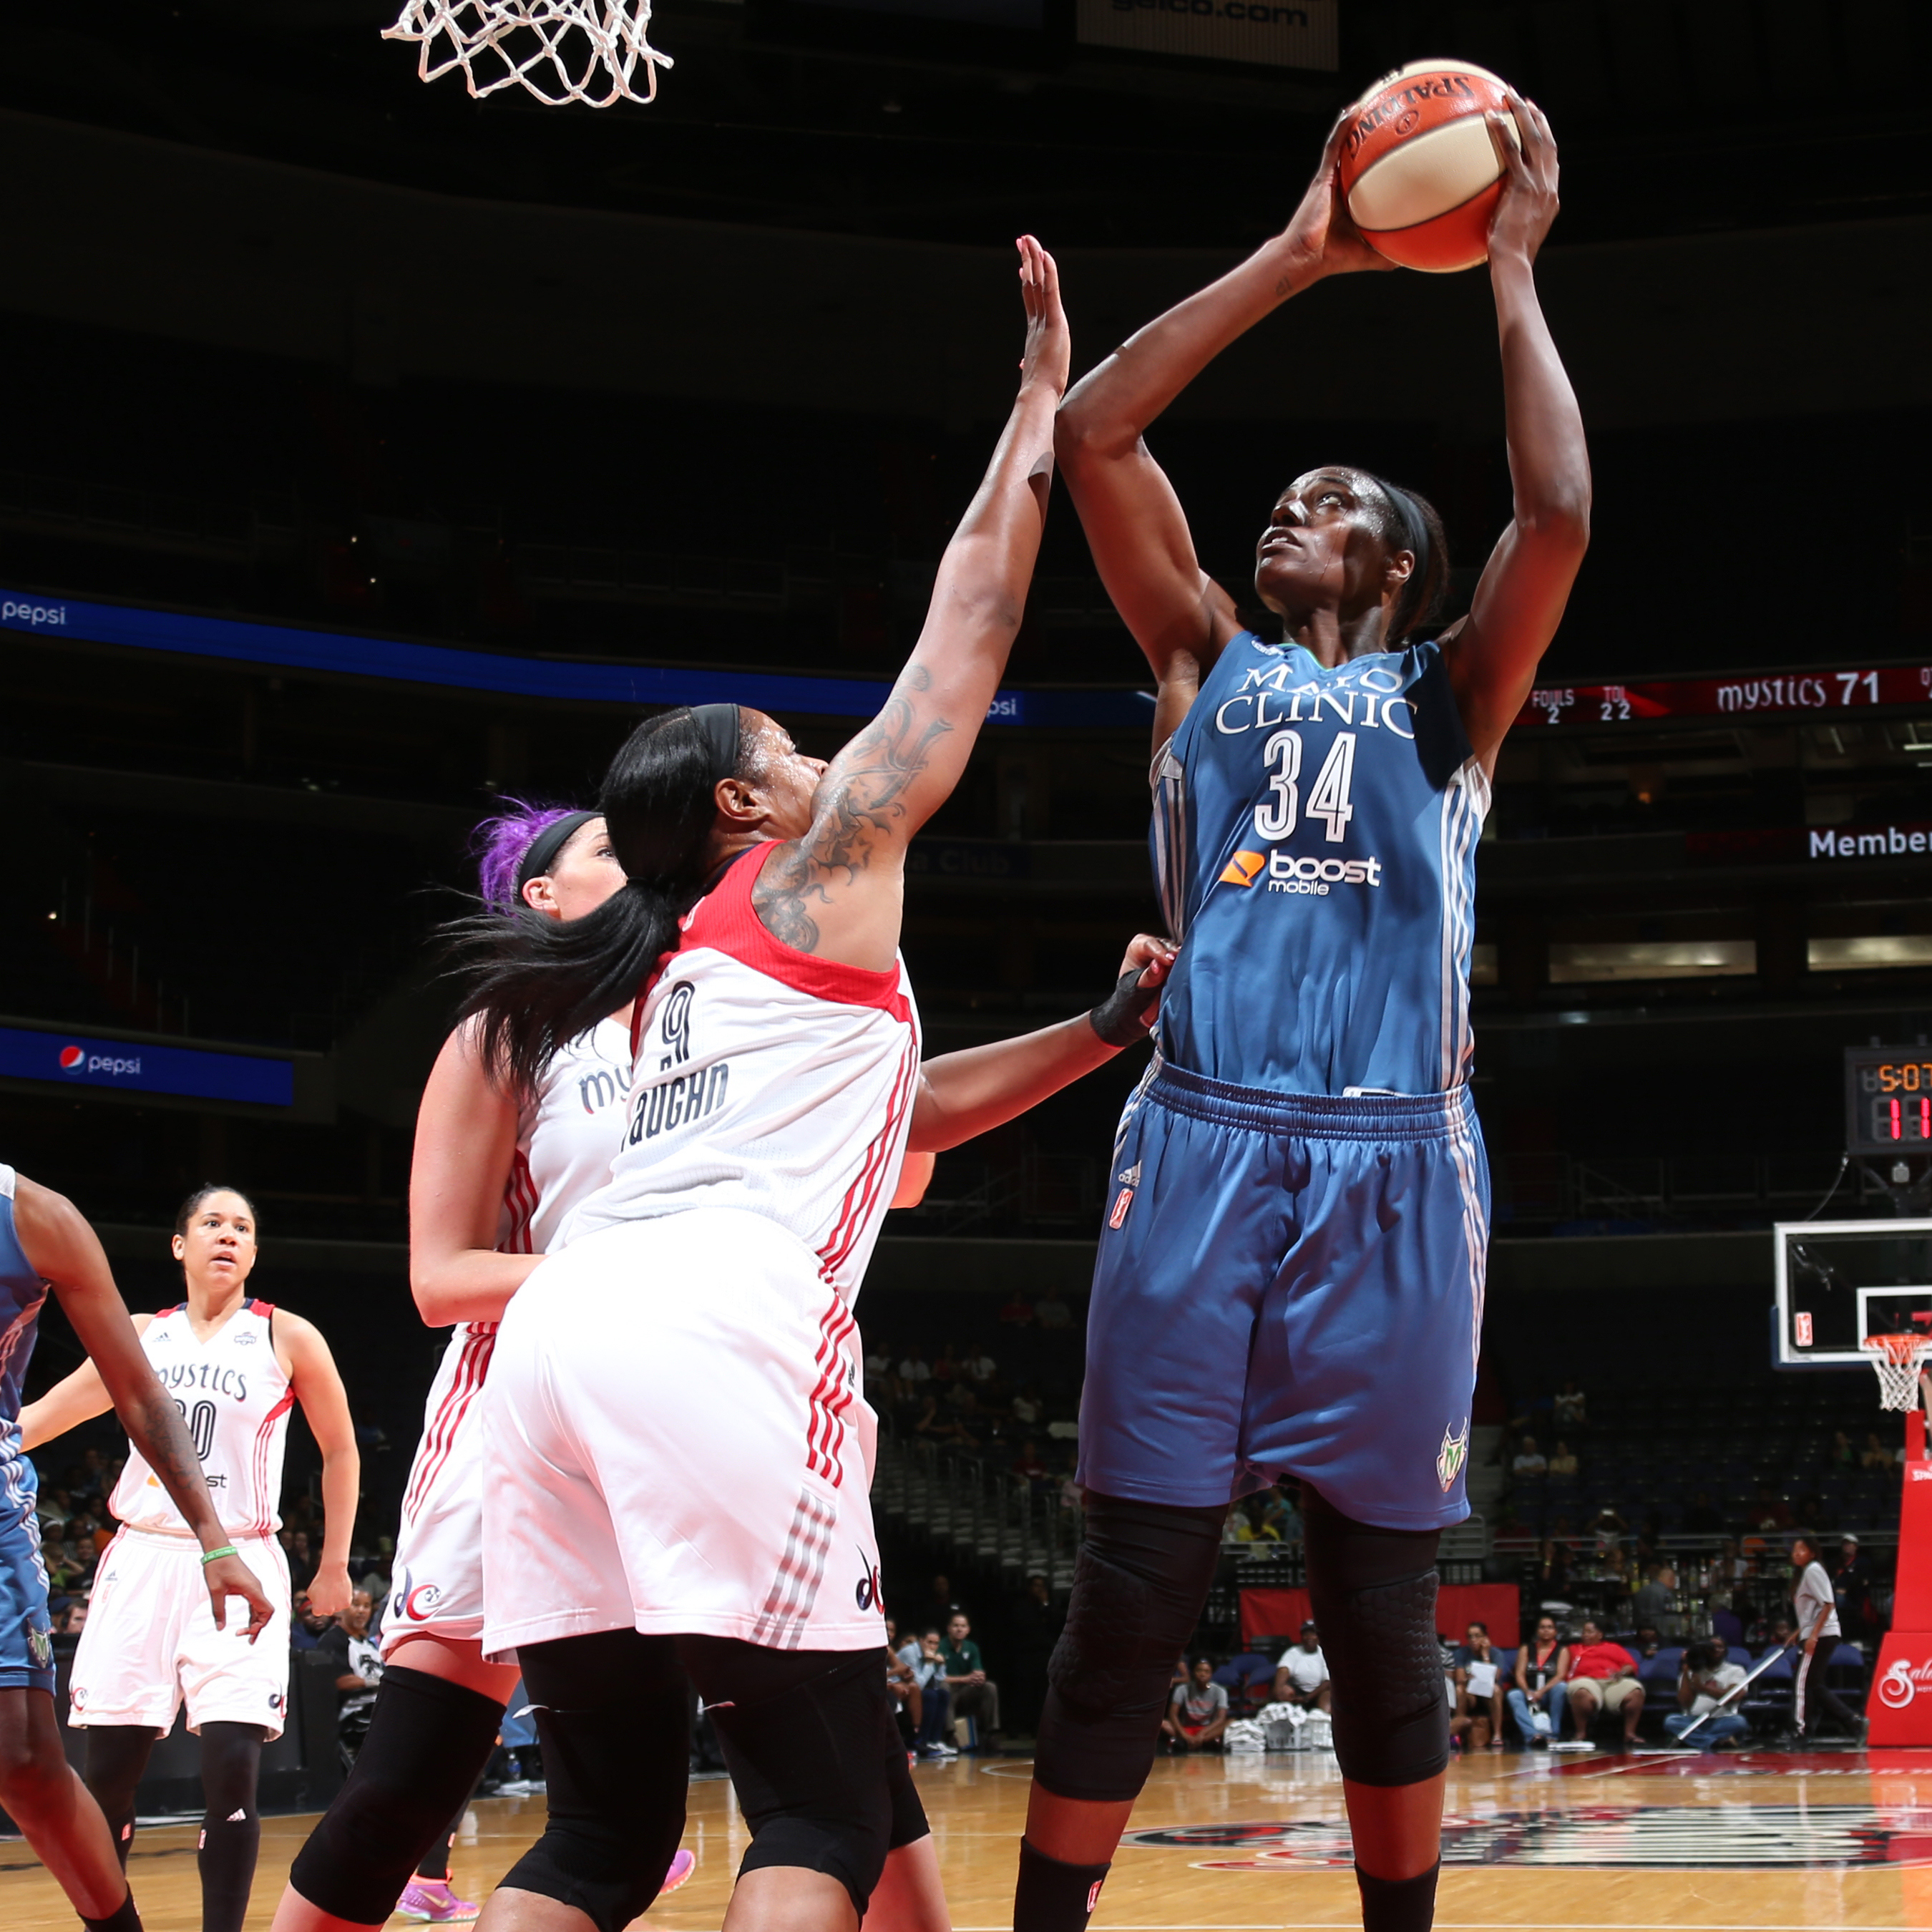 Lynx center Sylvia Fowles had a great game against the Mystics notching a double-double, finishing with 15 points and 1 rebounds.